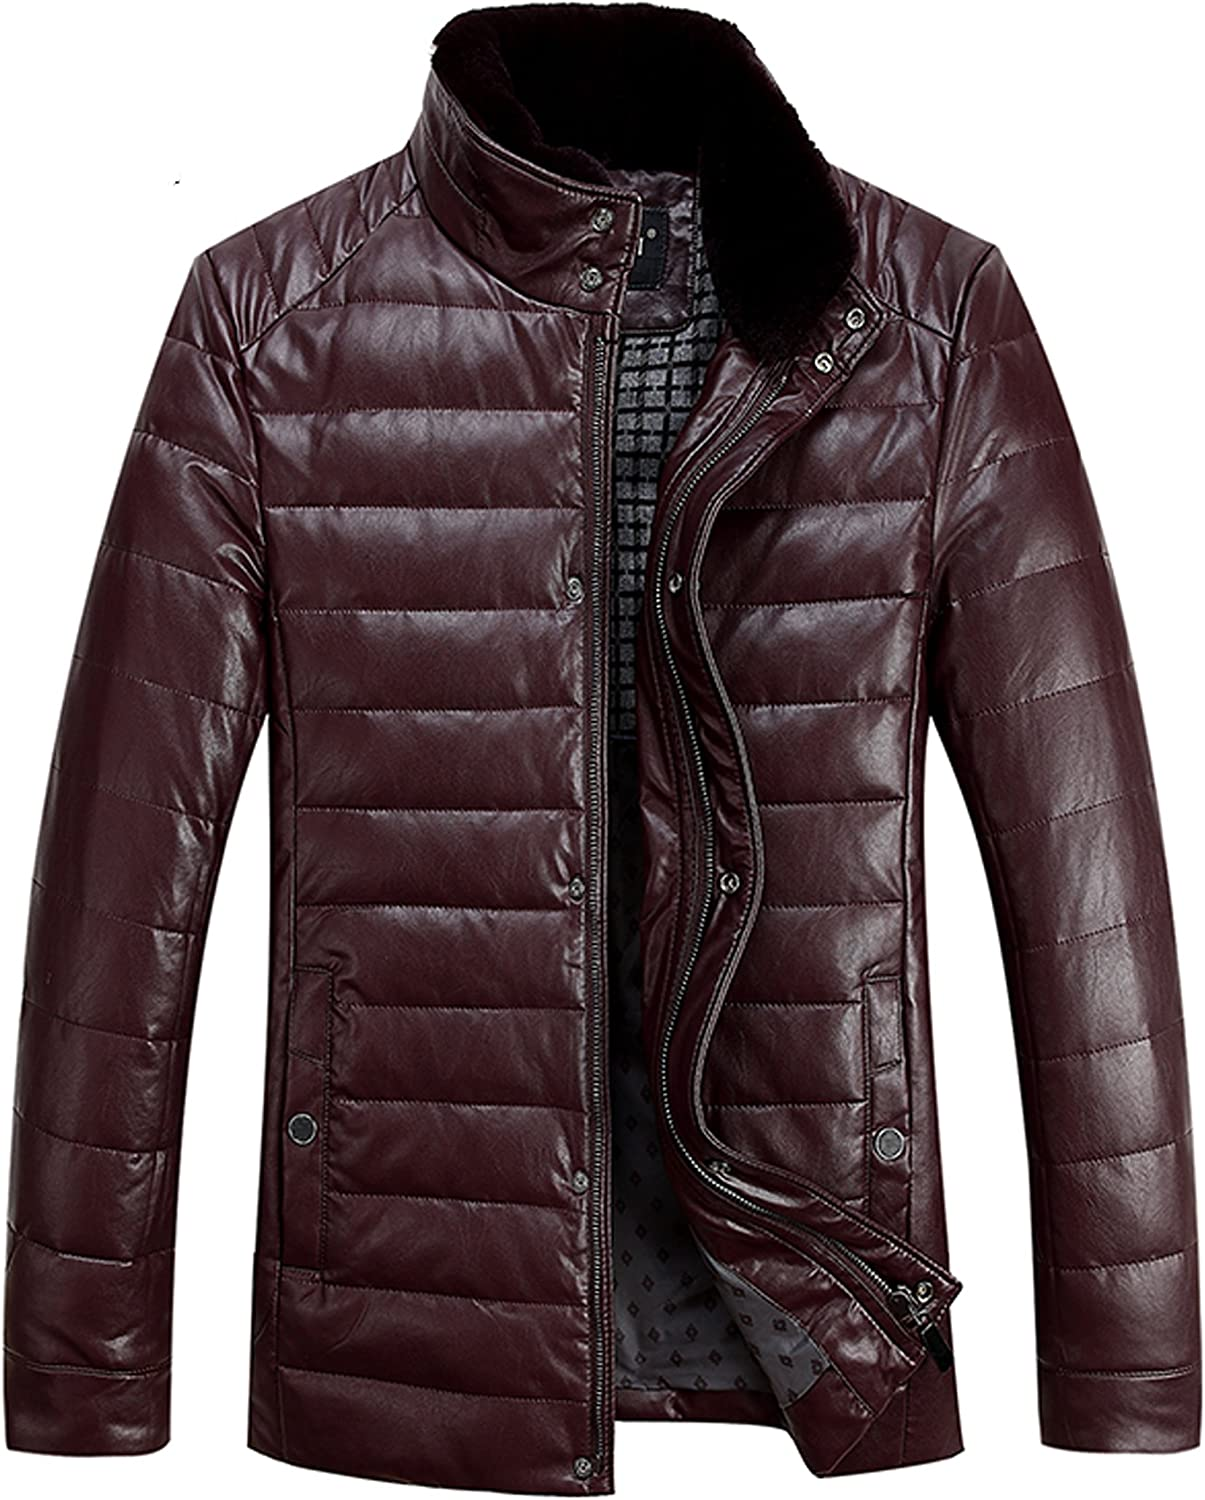 PENER Winter Men's Fashion Casual Leather Down Jacket